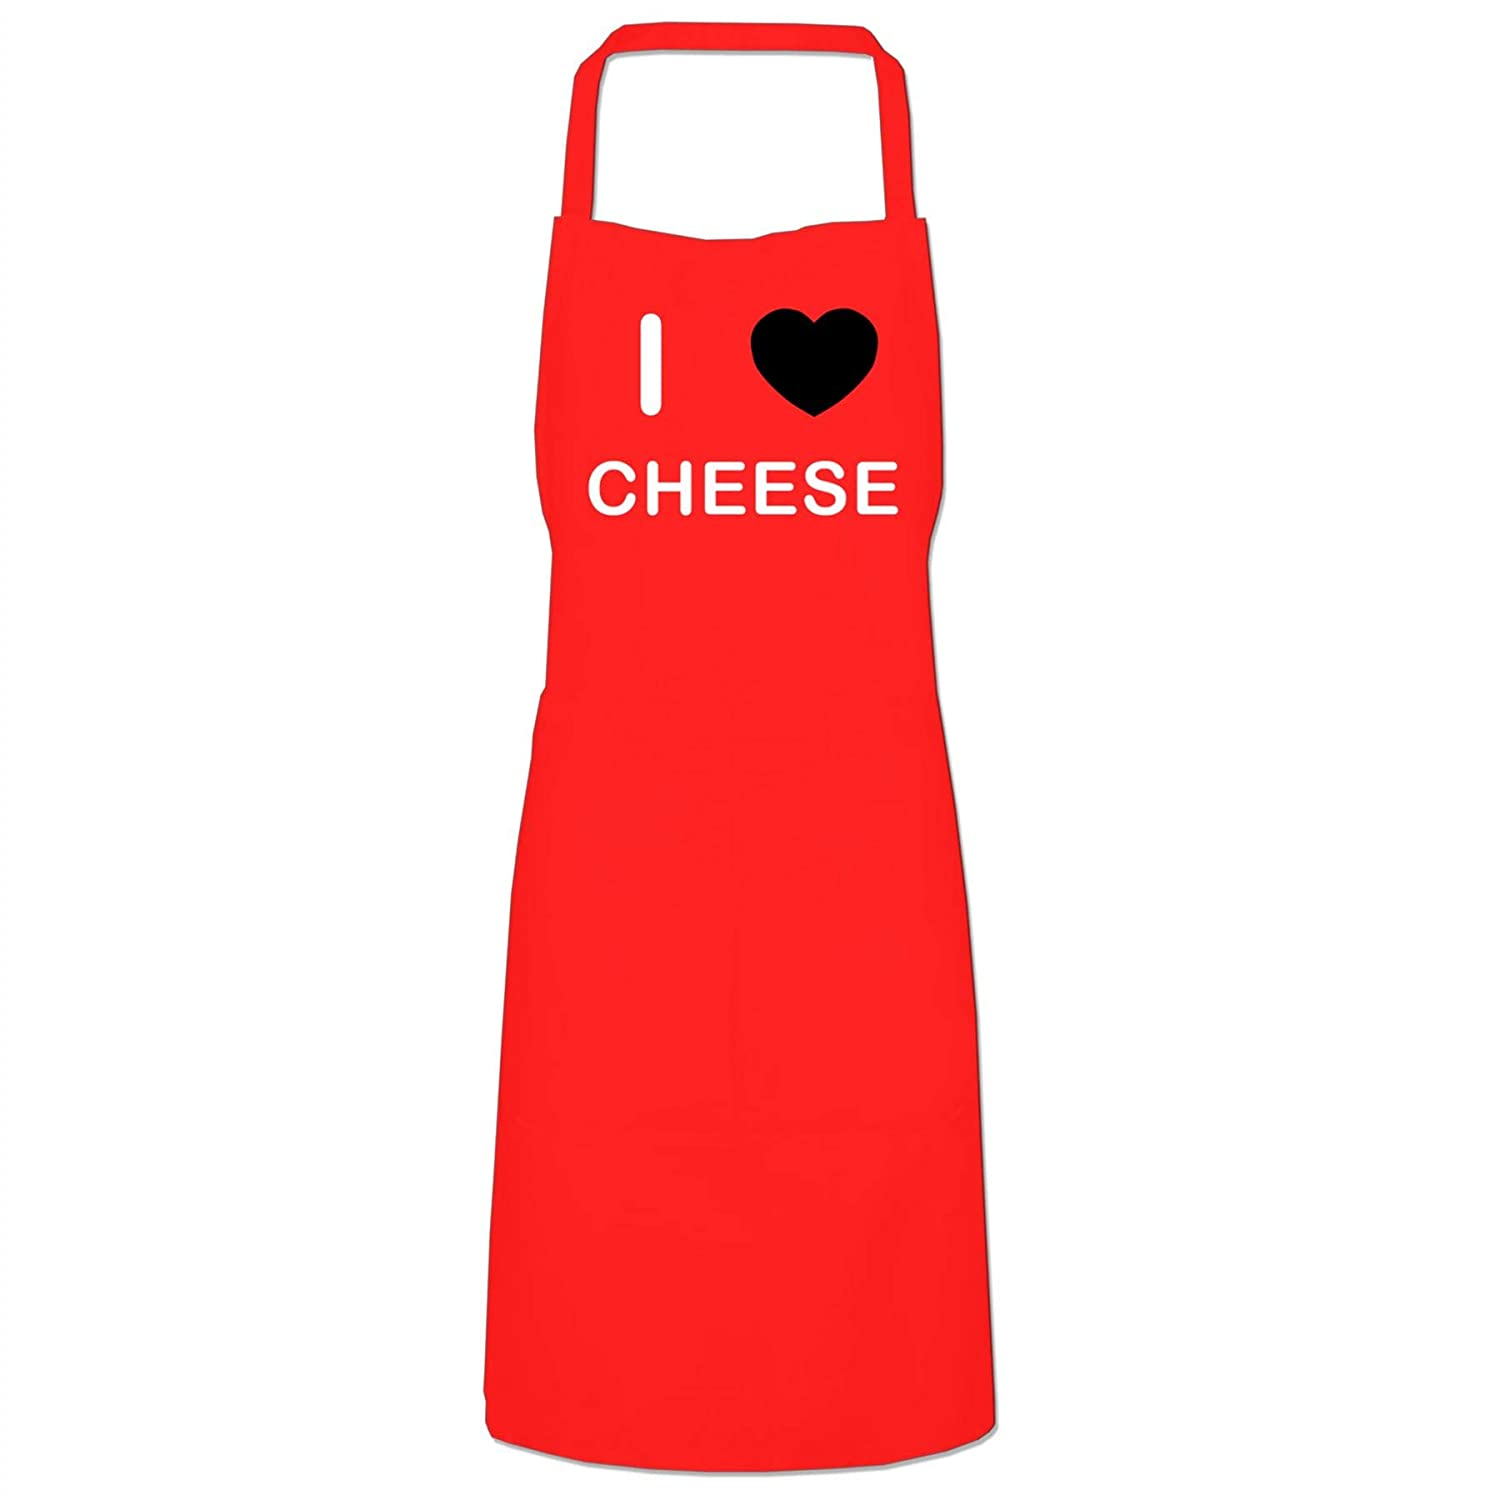 I Love Cheese - Black Cooks Bib Apron BadgeBeast.co.uk